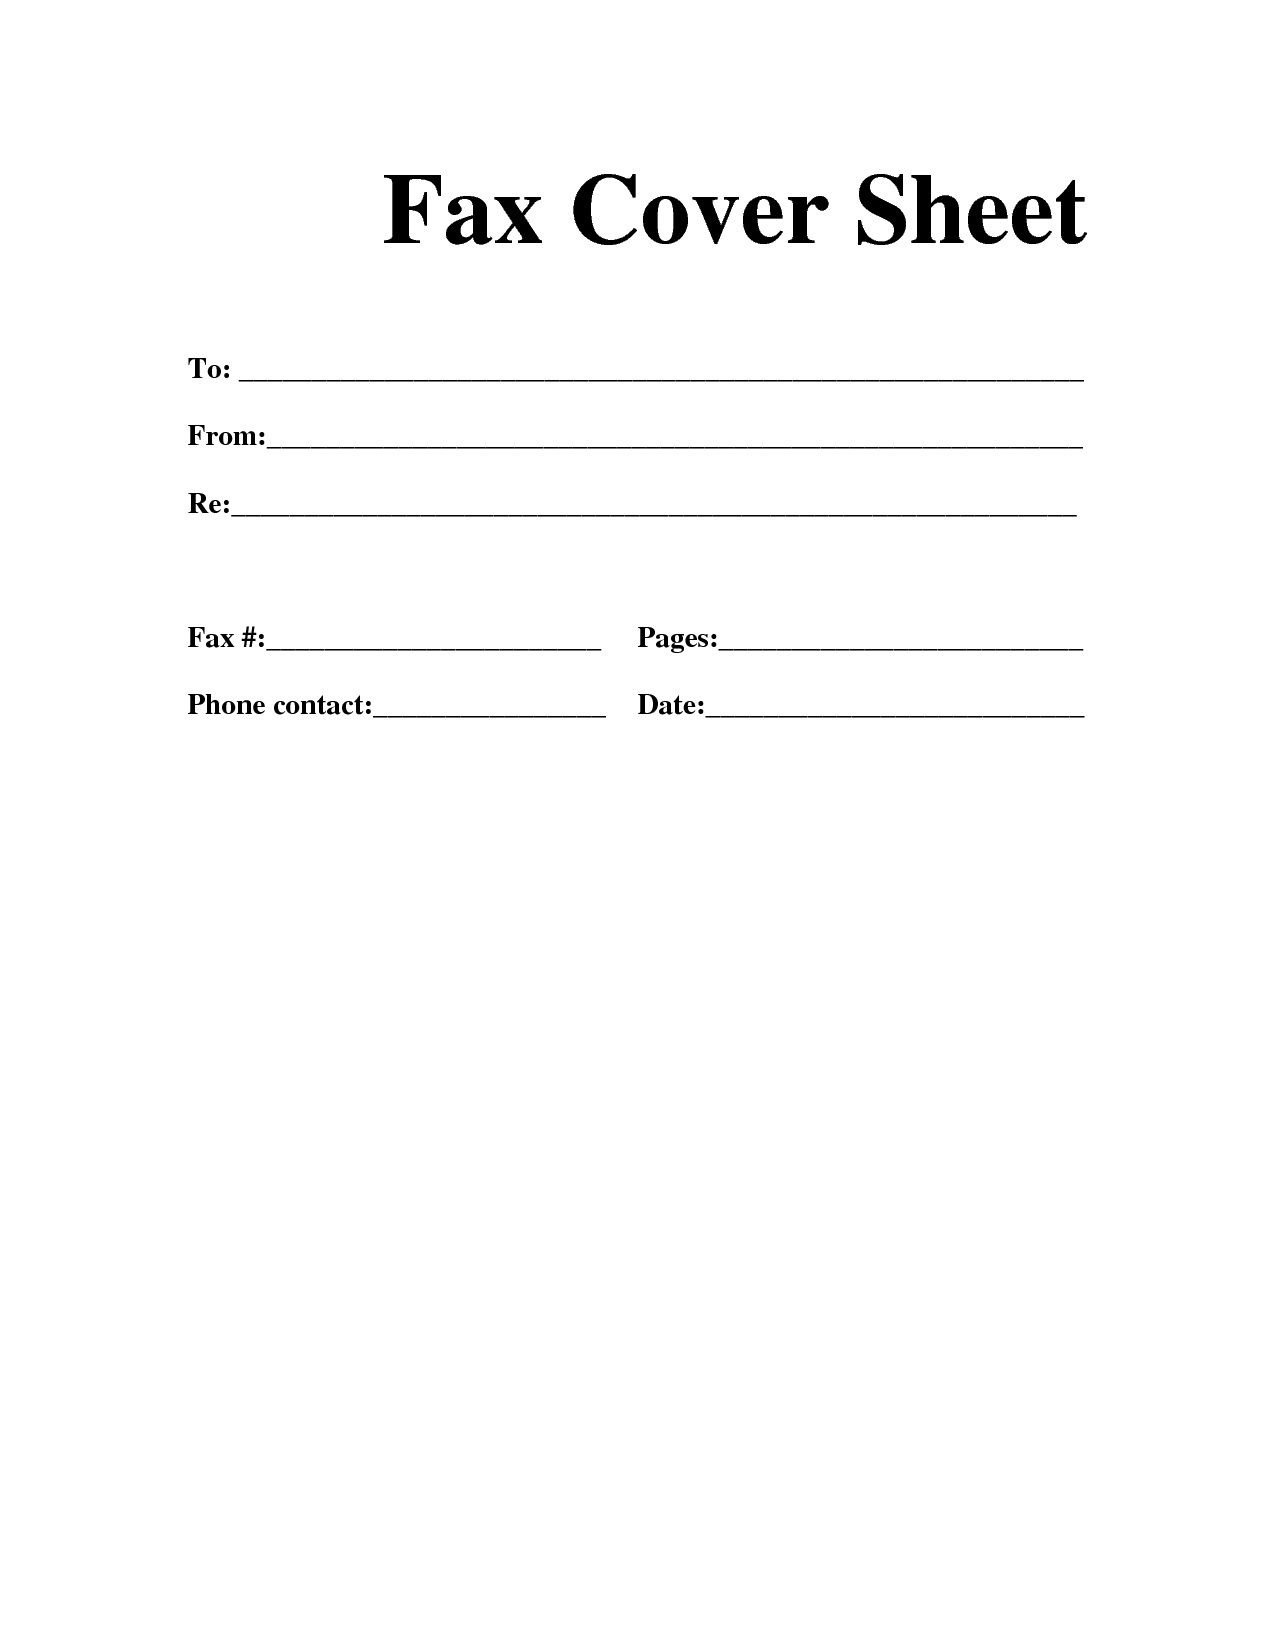 1000+ images about Fax Cover Letters on Pinterest | Maze, Paper ...